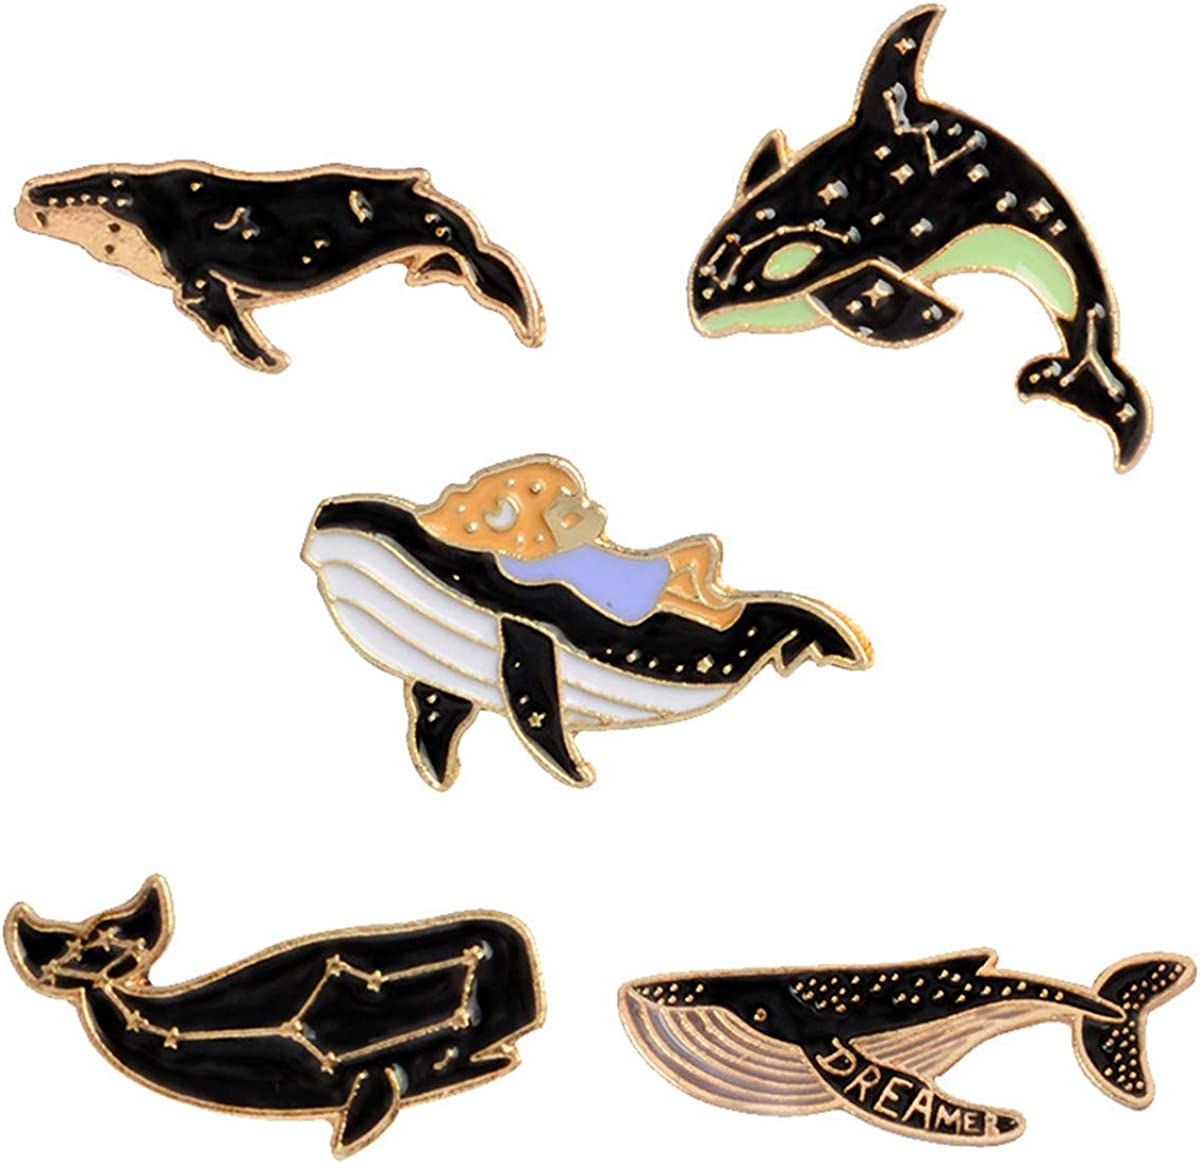 WINZIK Lapel Brooch Pins Set 5pcs Novelty Cute Cartoon Dolphin Whale Pattern Enamel-liked Badges for Children Adults Clothes Bags Decor: Clothing